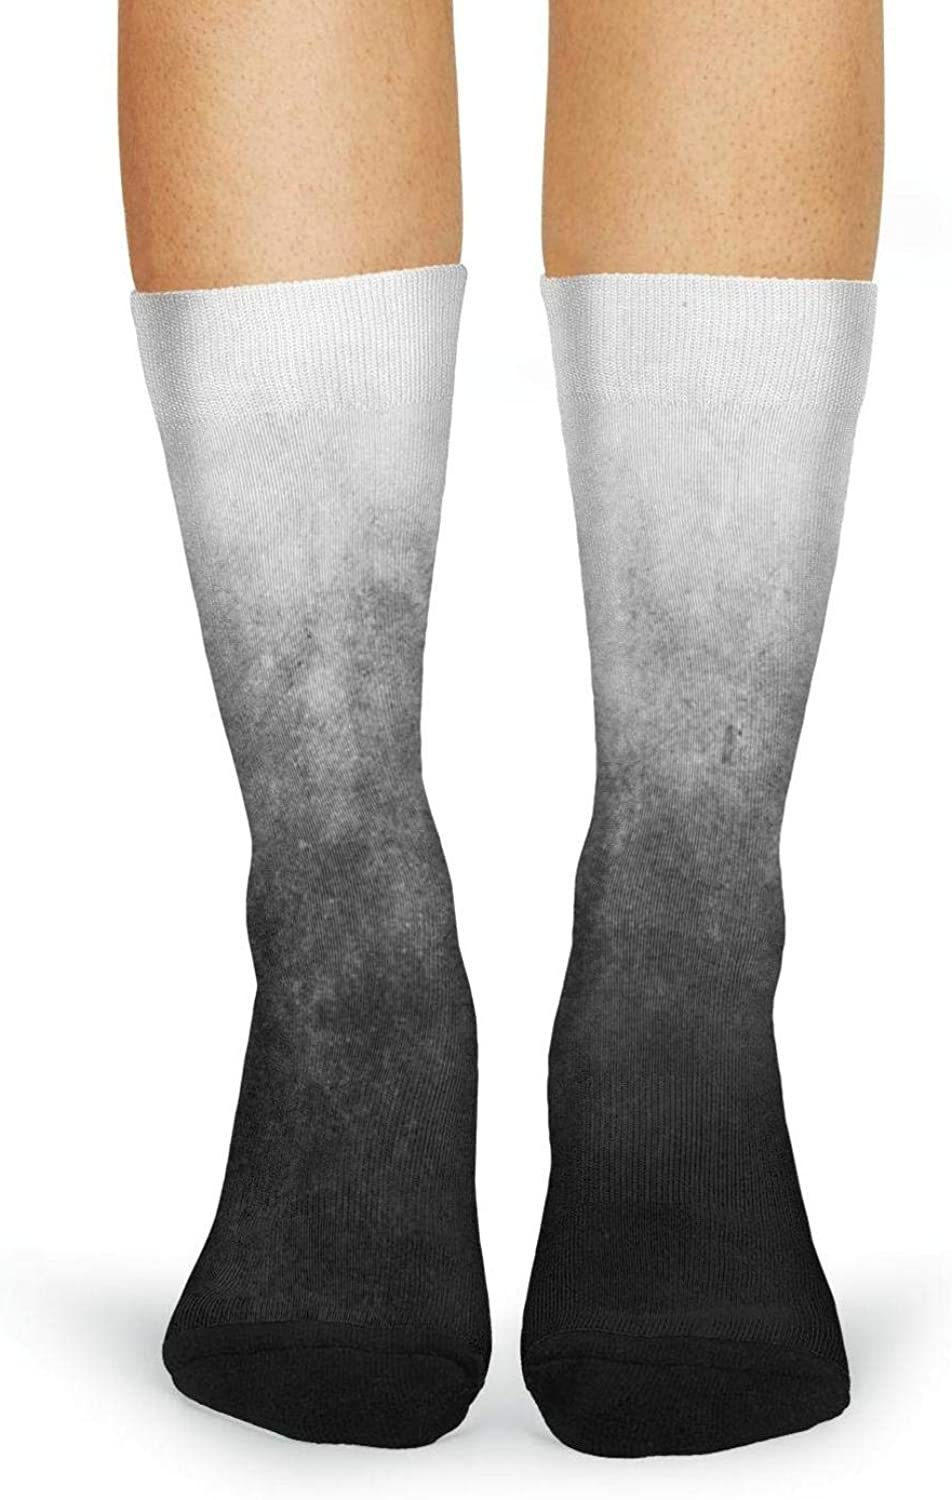 XIdan-die Womens Over-the-Calf Tube Socks Abstract Marble Ink Moisture Wicking Casual Socks